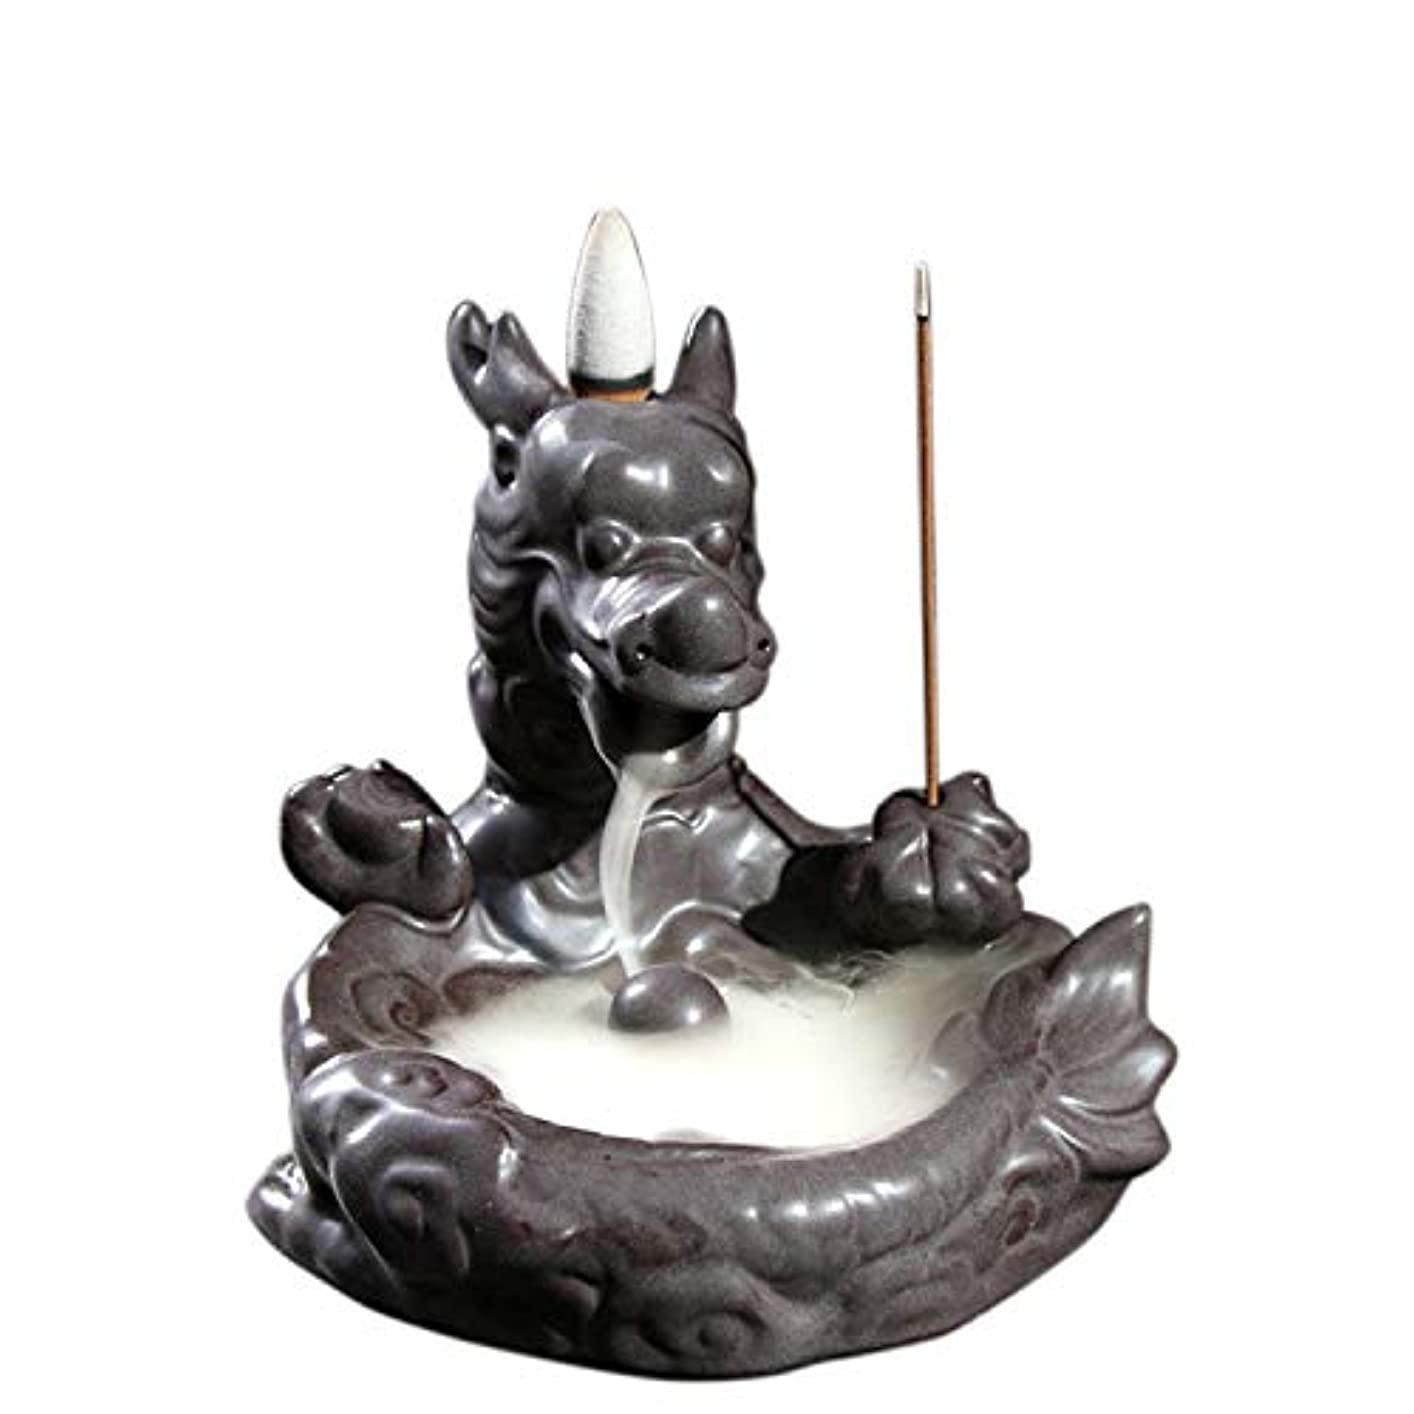 テザー怪しいバレルXPPXPP Backflow Incense Burner, Household Ceramic Returning Cone-shaped Candlestick Burner